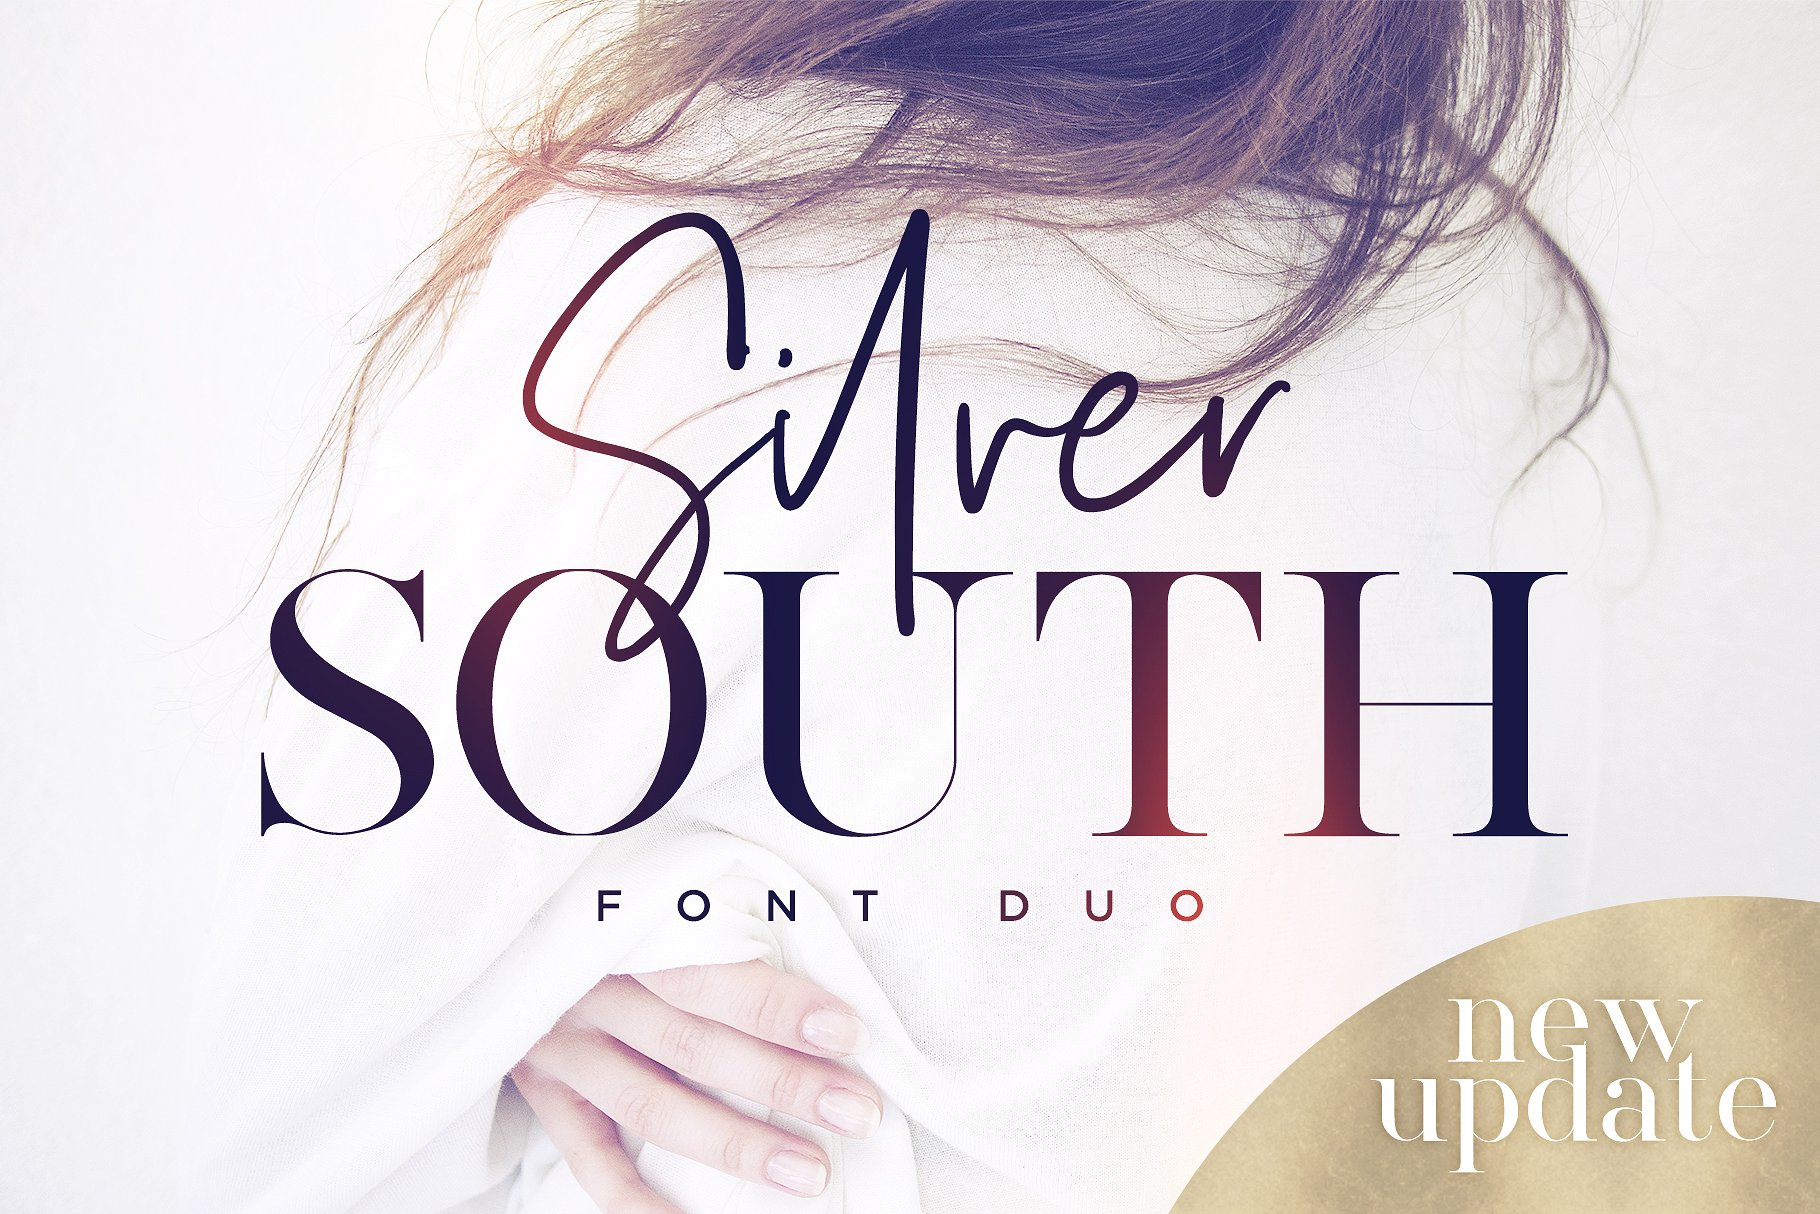 3. Silver South Font Dou (New Update)